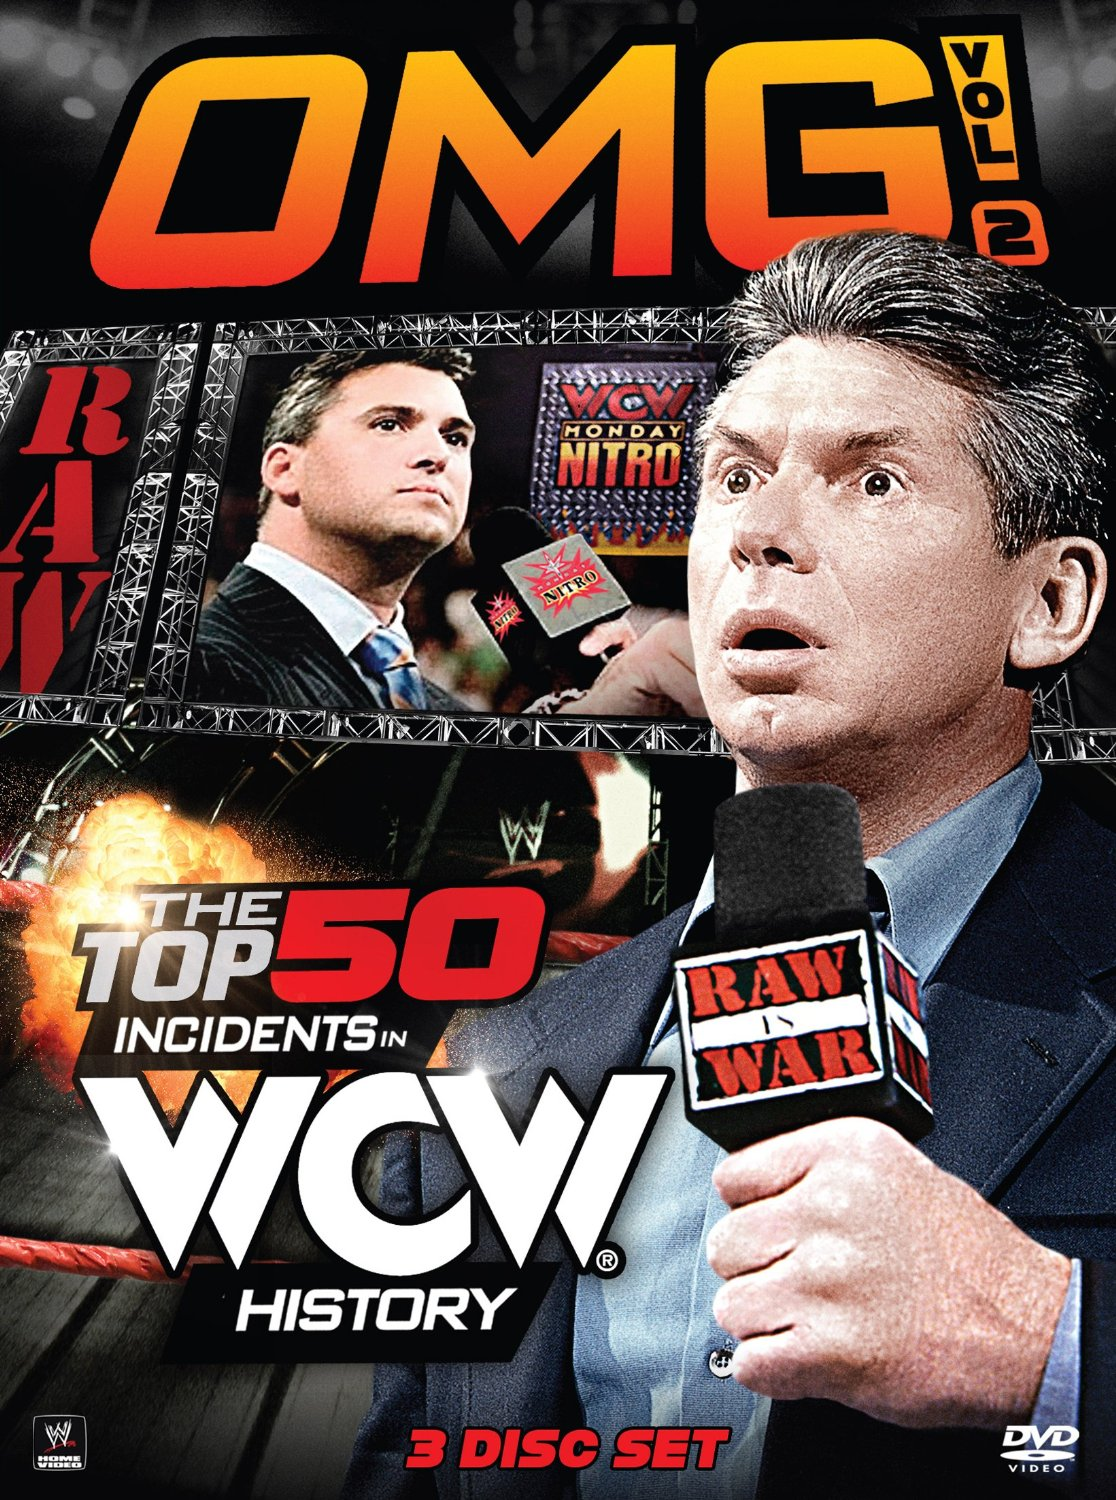 WWE OMG Top 50 Incidents in WCW History Volume 2 DVD cover Vince McMahon Shane McMahon